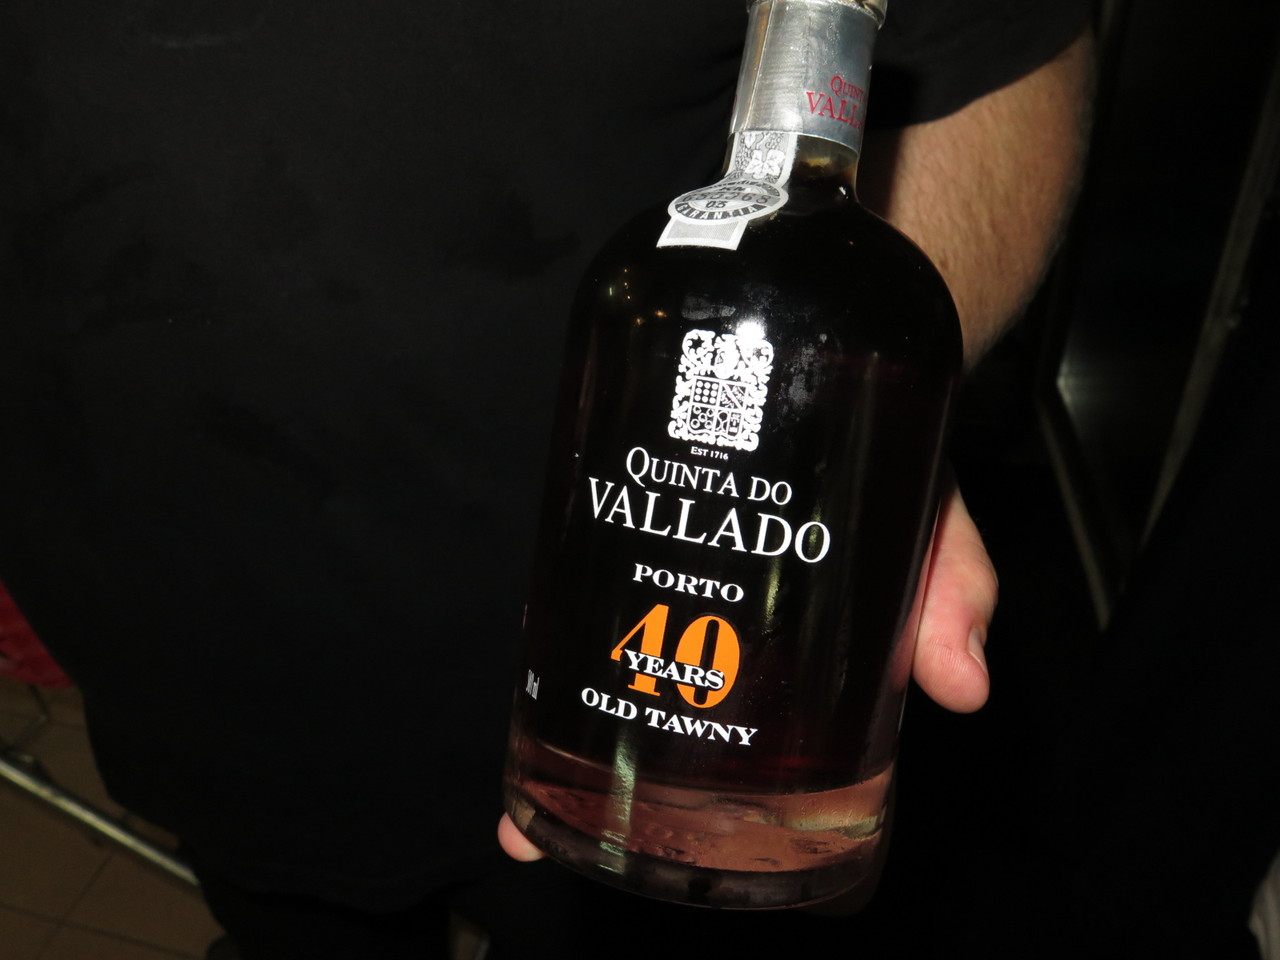 Quinta do Vallado 40 Years Old Tawny